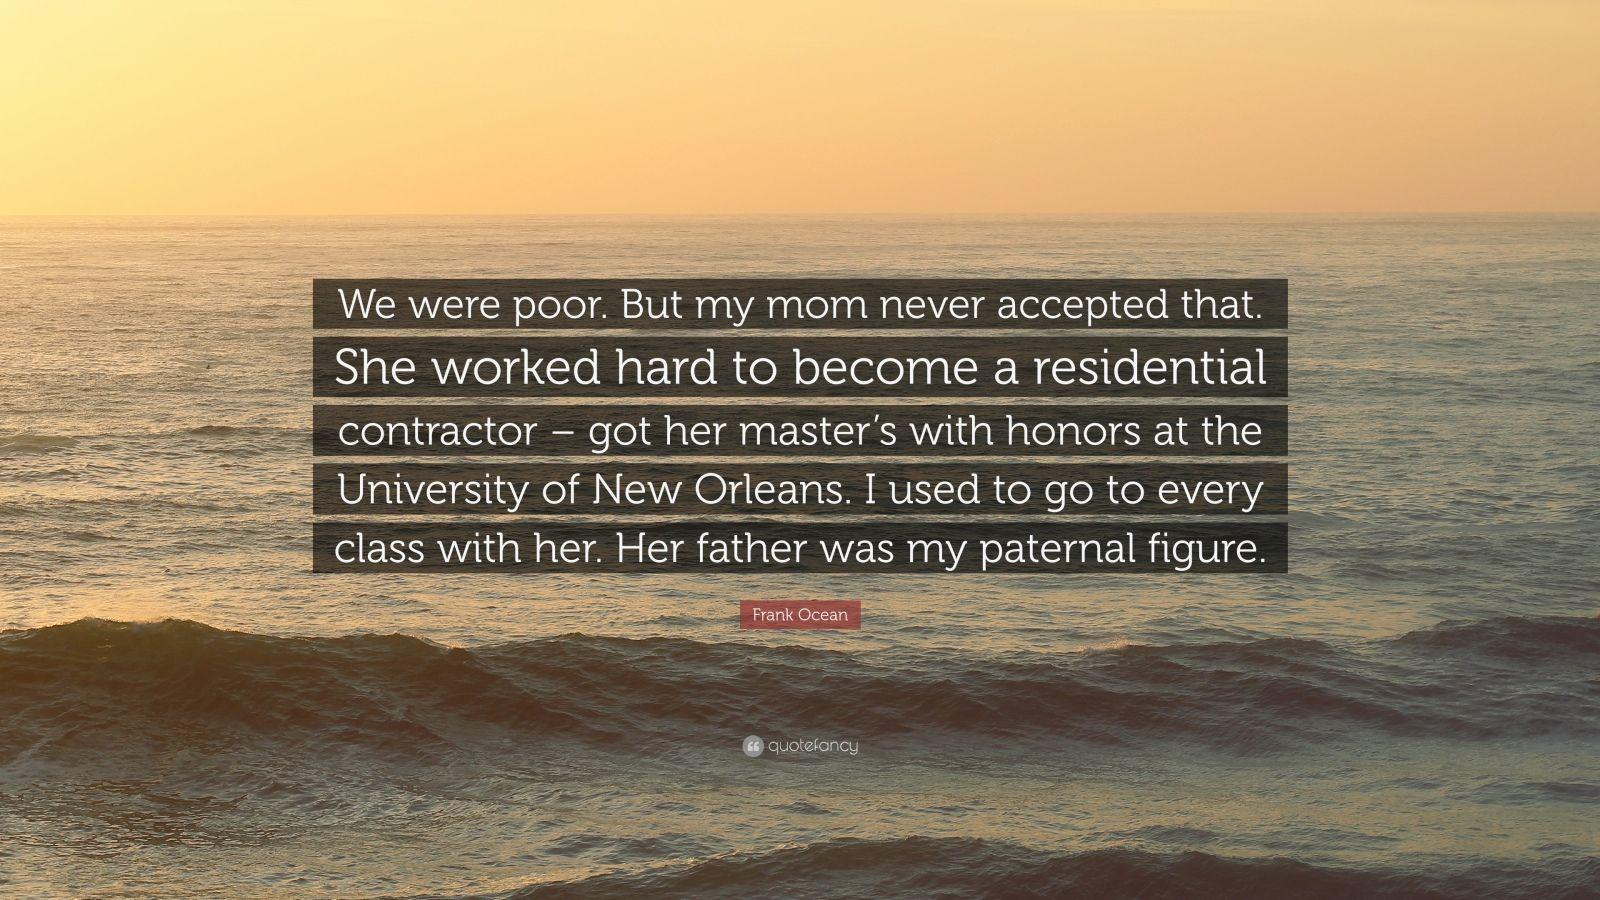 """Frank Ocean Quote: """"We were poor. But my mom never accepted that. She worked hard to become a residential contractor – got her master's with honors at the University of New Orleans. I used to go to every class with her. Her father was my paternal figure."""""""